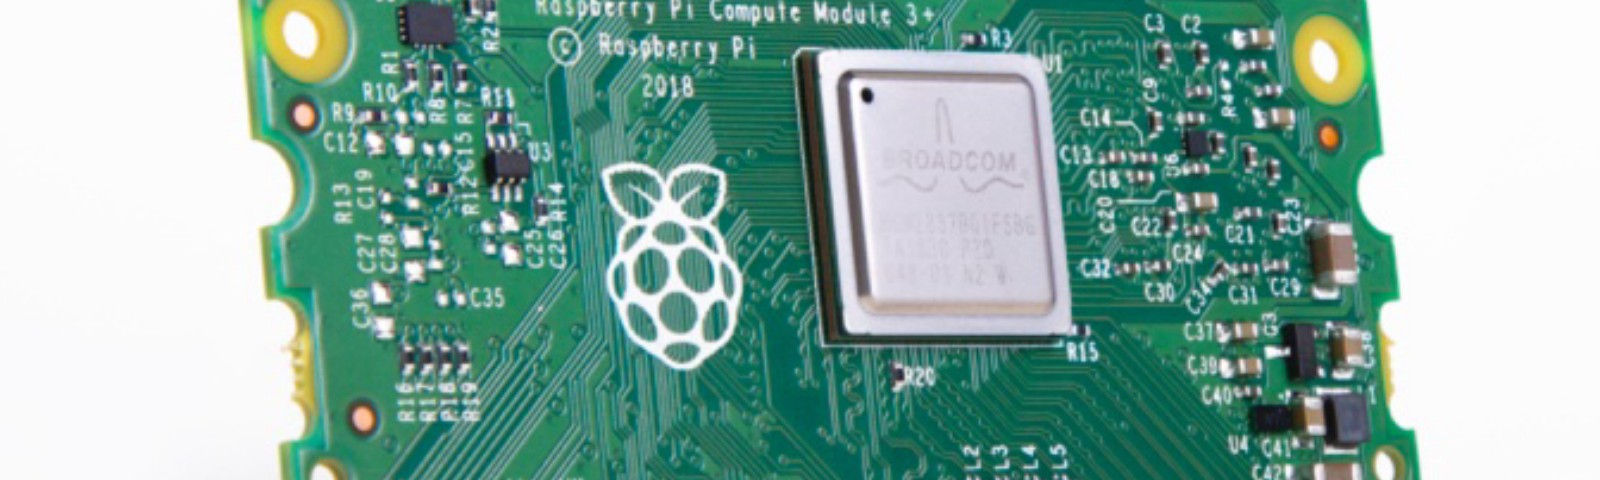 First Thoughts on the New Raspberry Pi Compute Module 3+